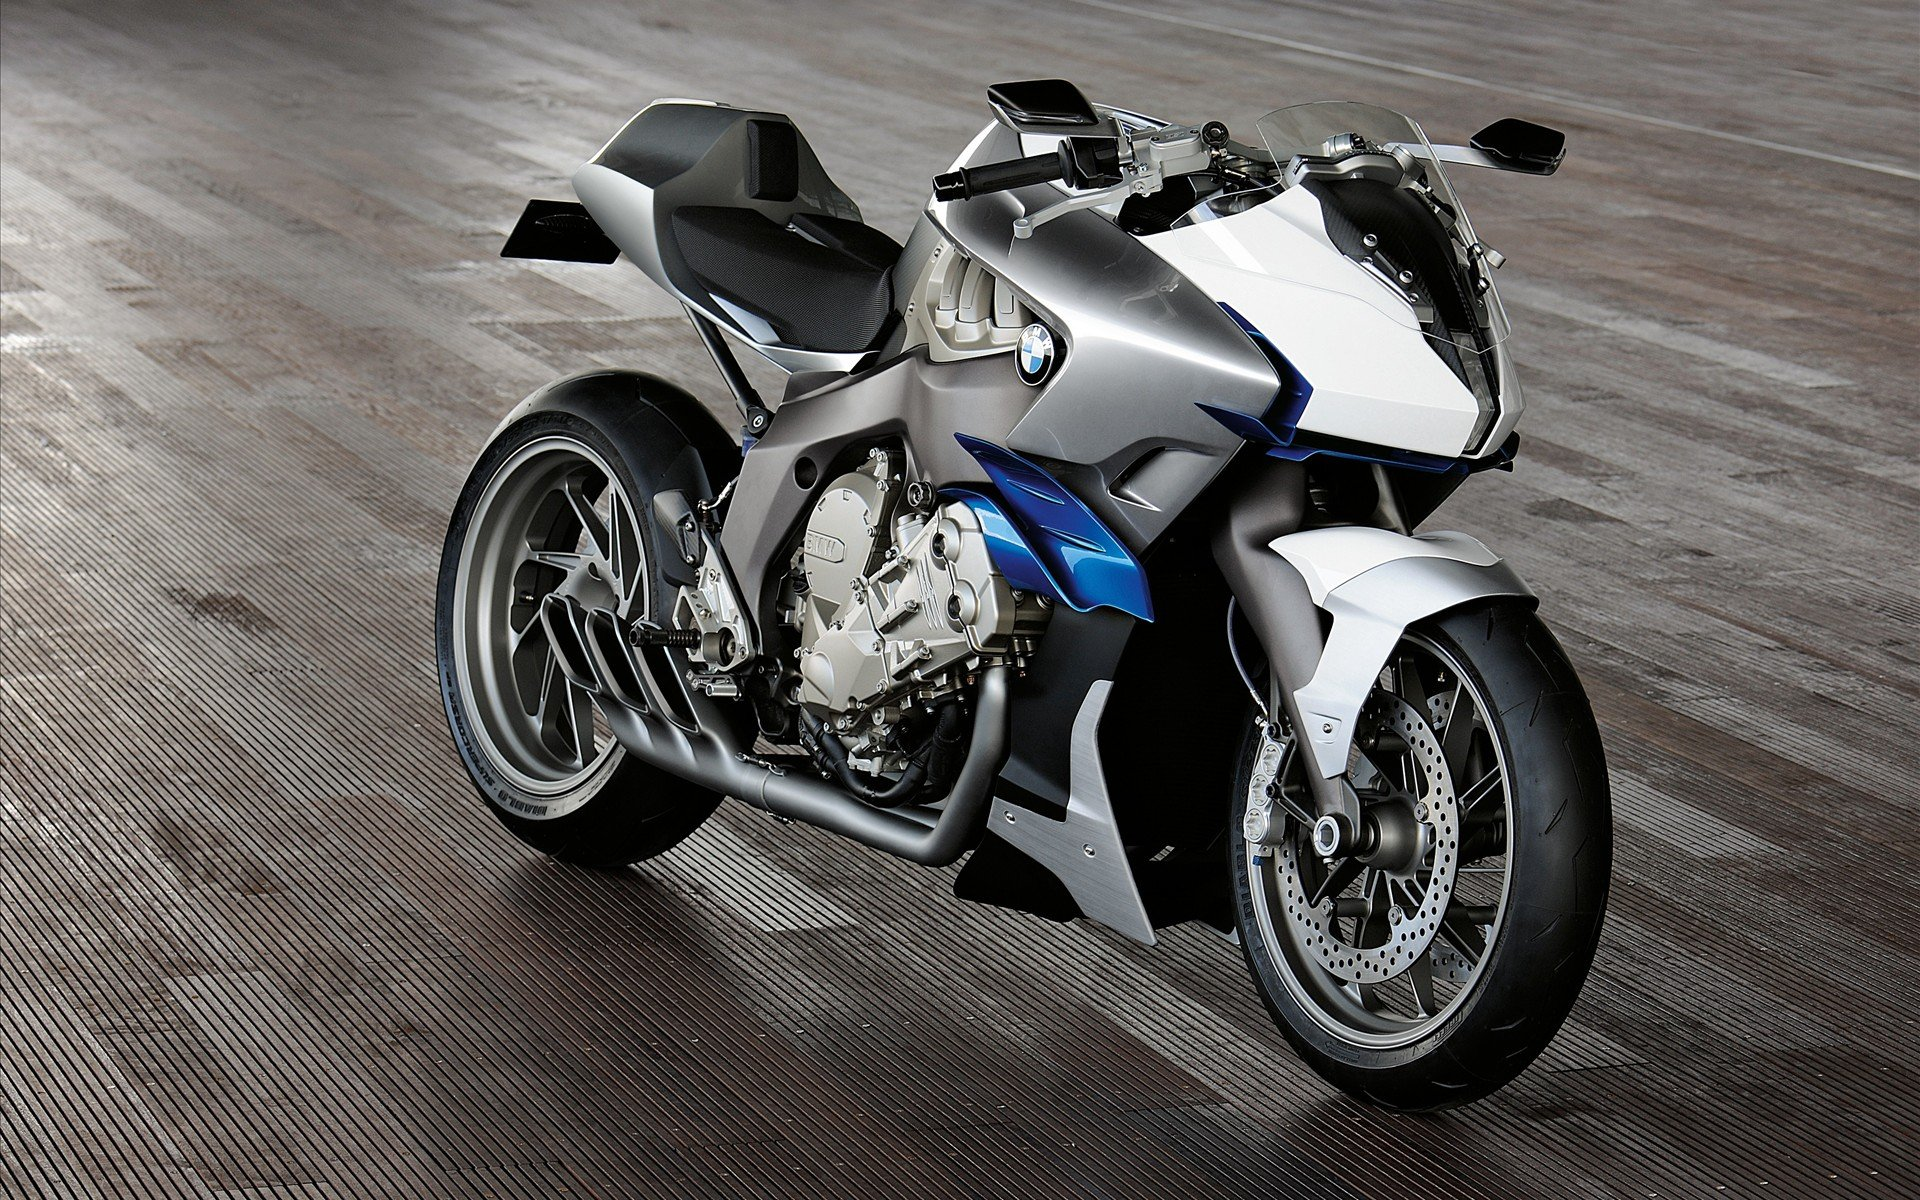 Free Download Bmw Motorcycles Hd Wallpapers For Desktop Hd